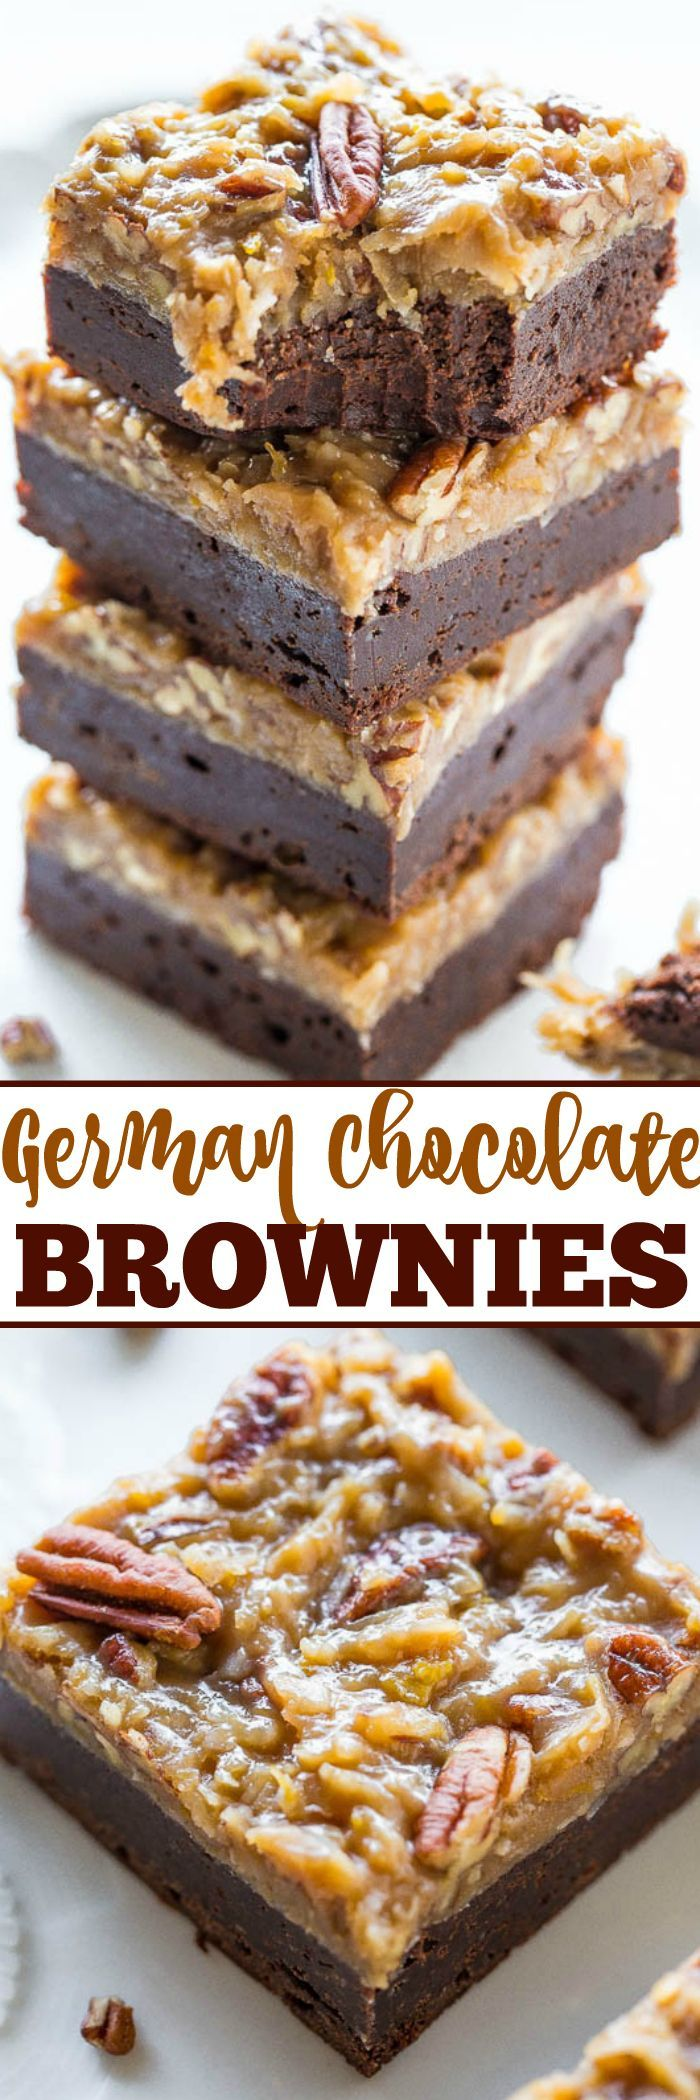 Nutella Topped Brownies Best 25 Brownie Toppings Ideas On Pinterest Box Brownie Recipes